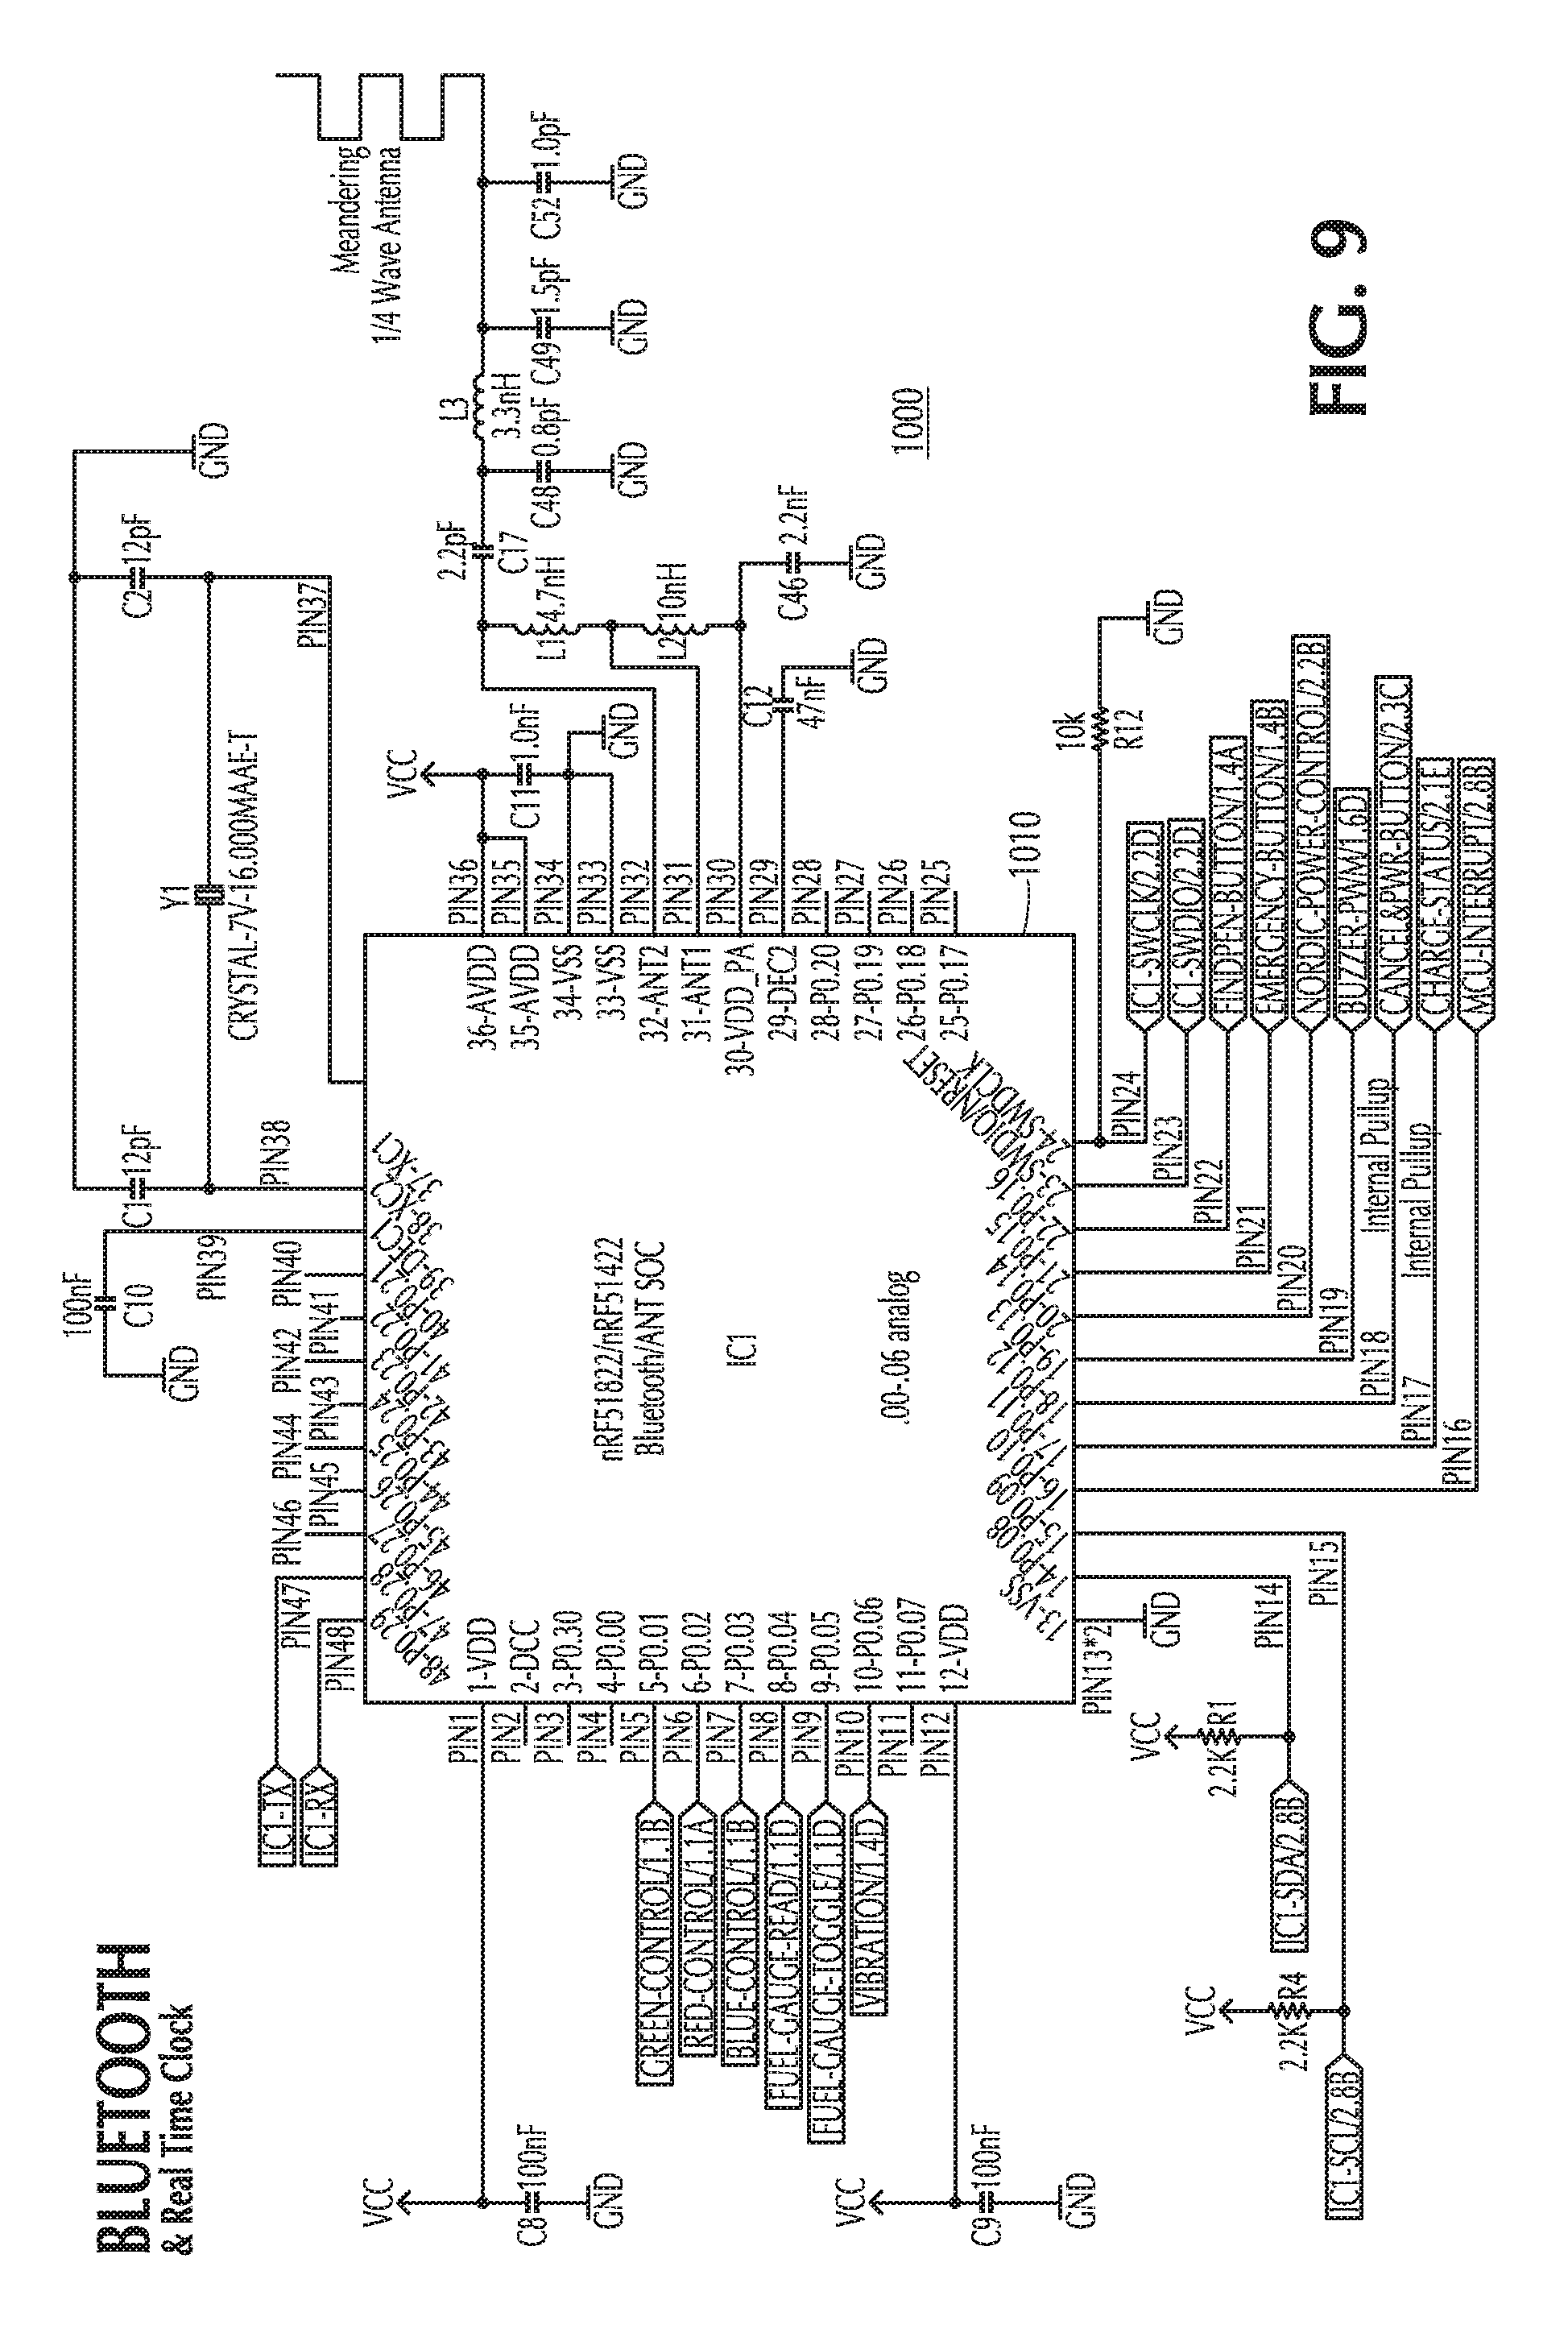 US20170236390A1 - Systems for tracking medications - Google